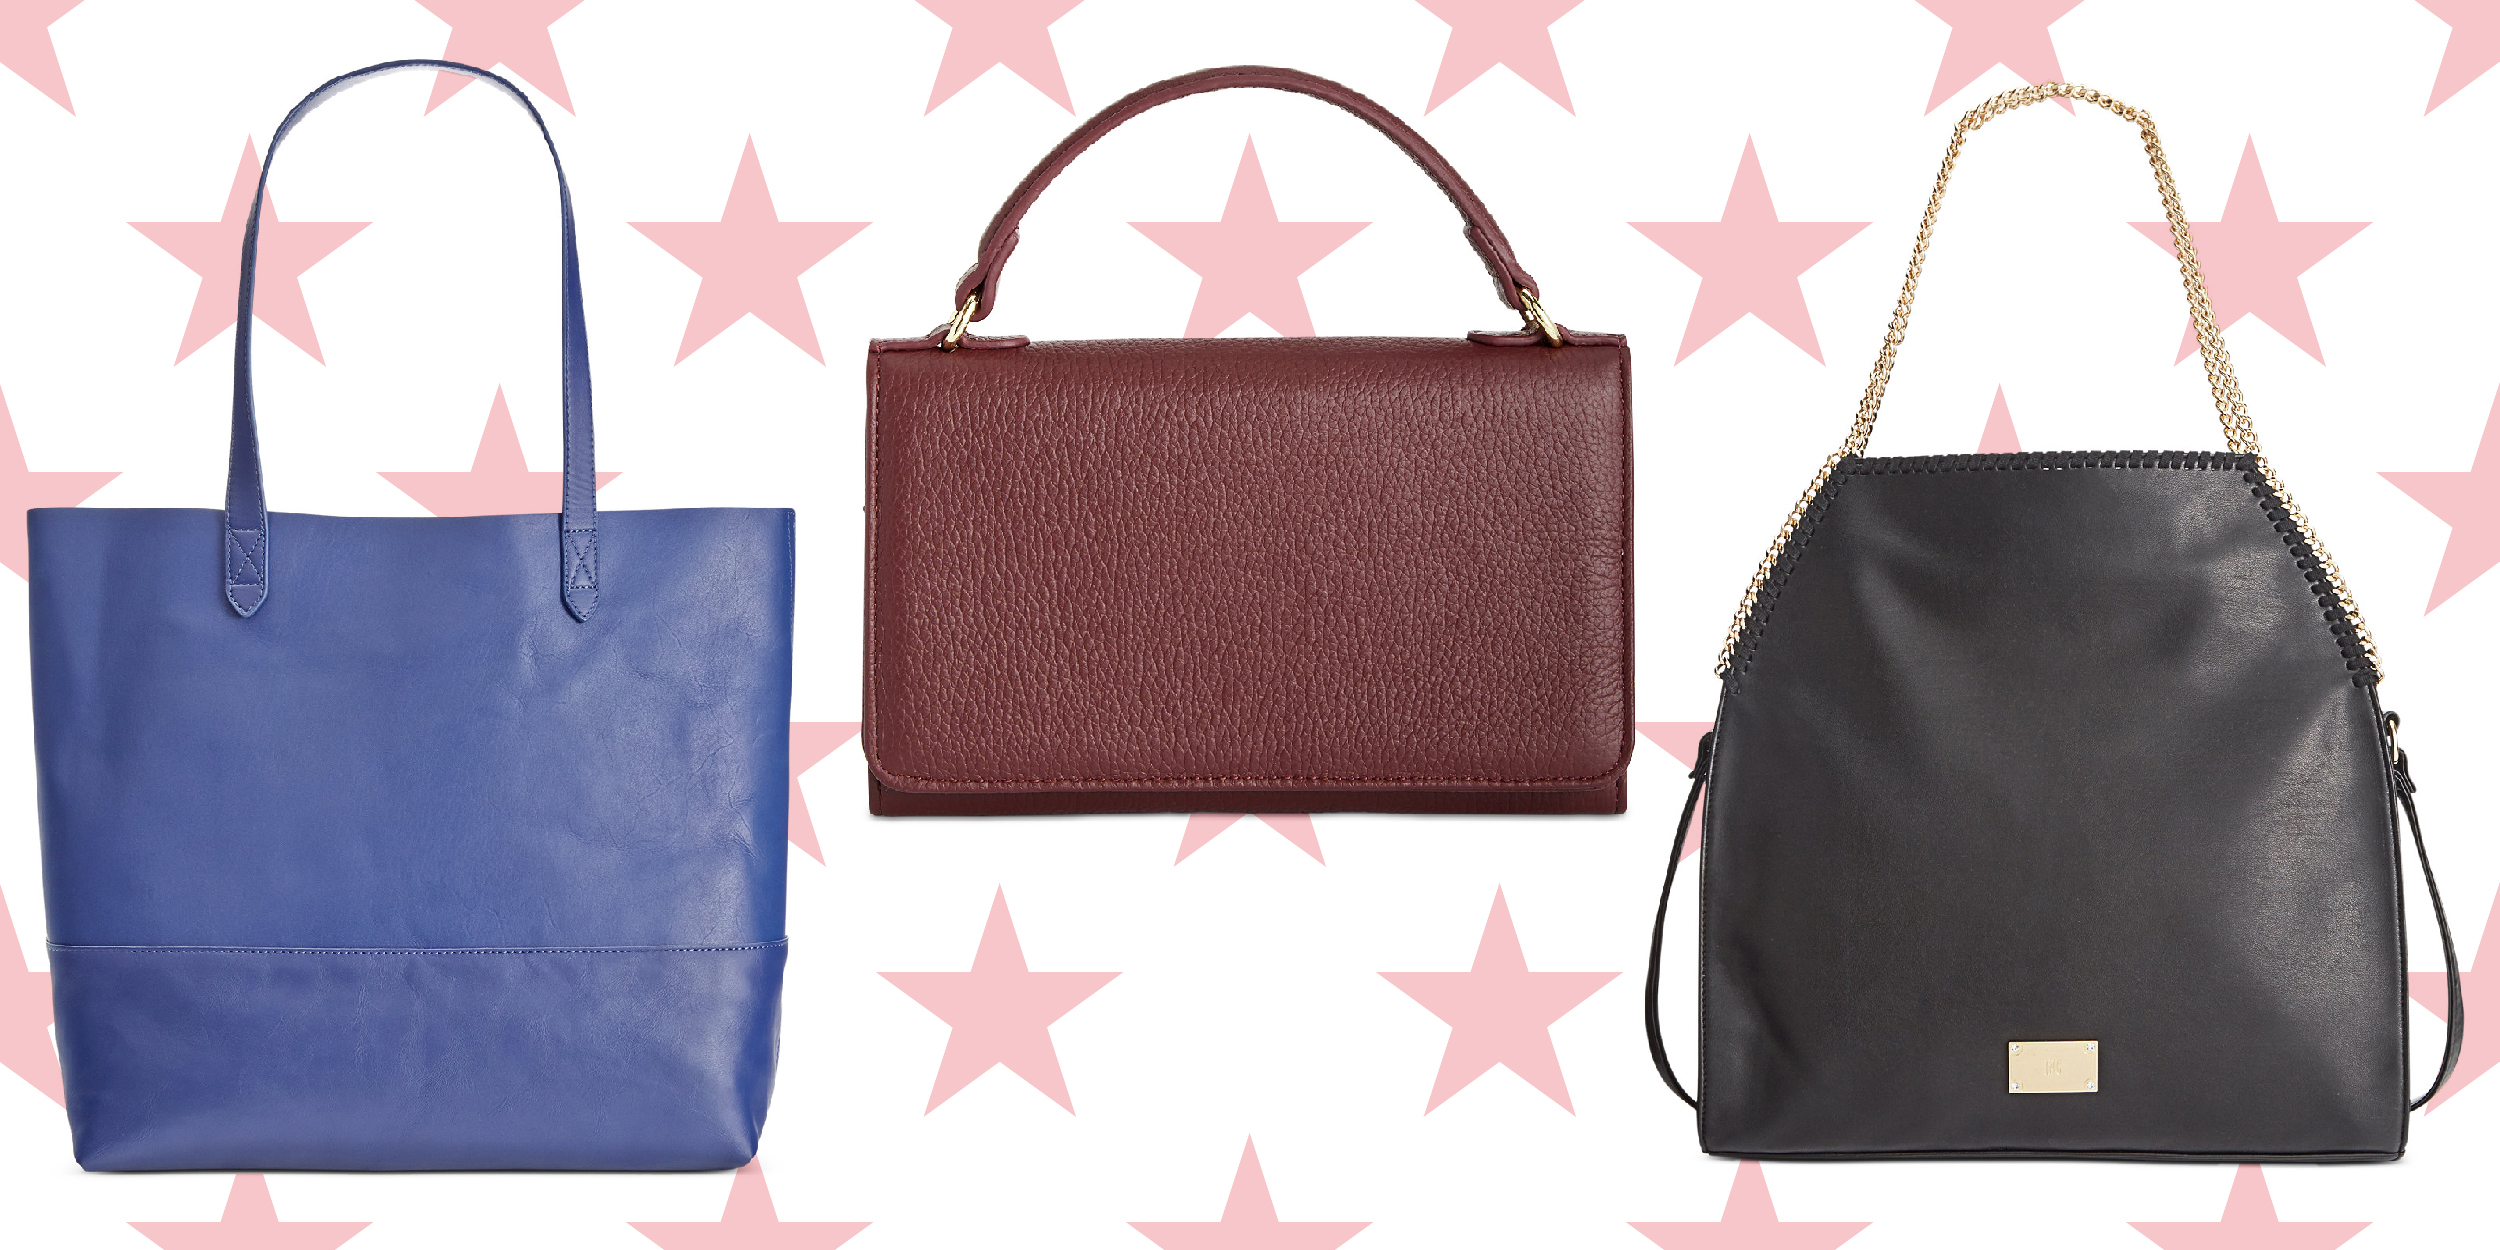 Almost 2,000 designer purses are on sale at Macy's right